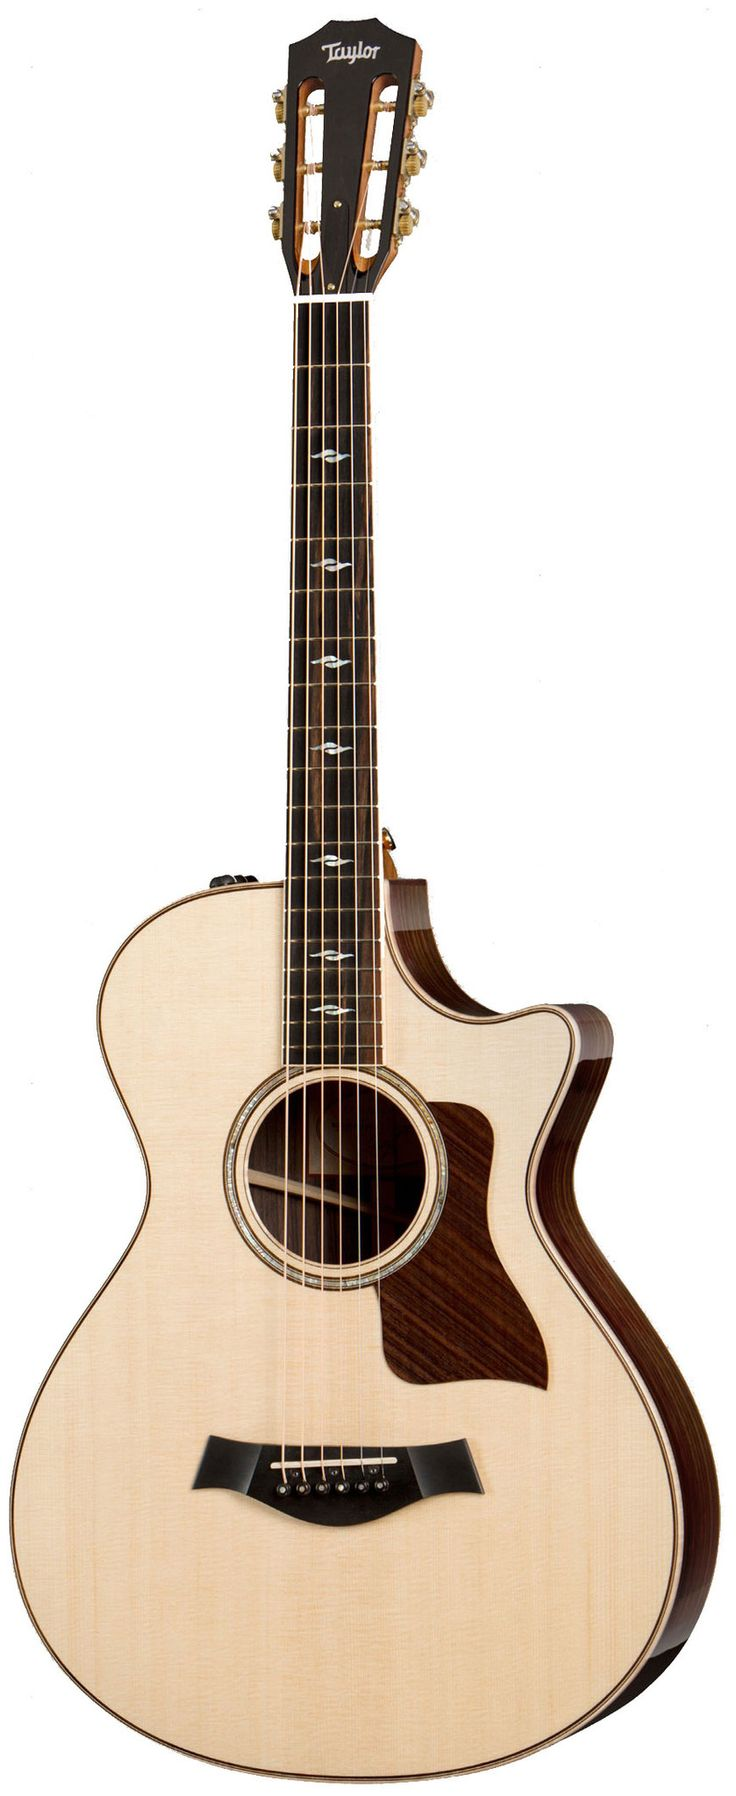 the 25 best taylor guitars ideas on pinterest beautiful guitars acoustic guitars and. Black Bedroom Furniture Sets. Home Design Ideas